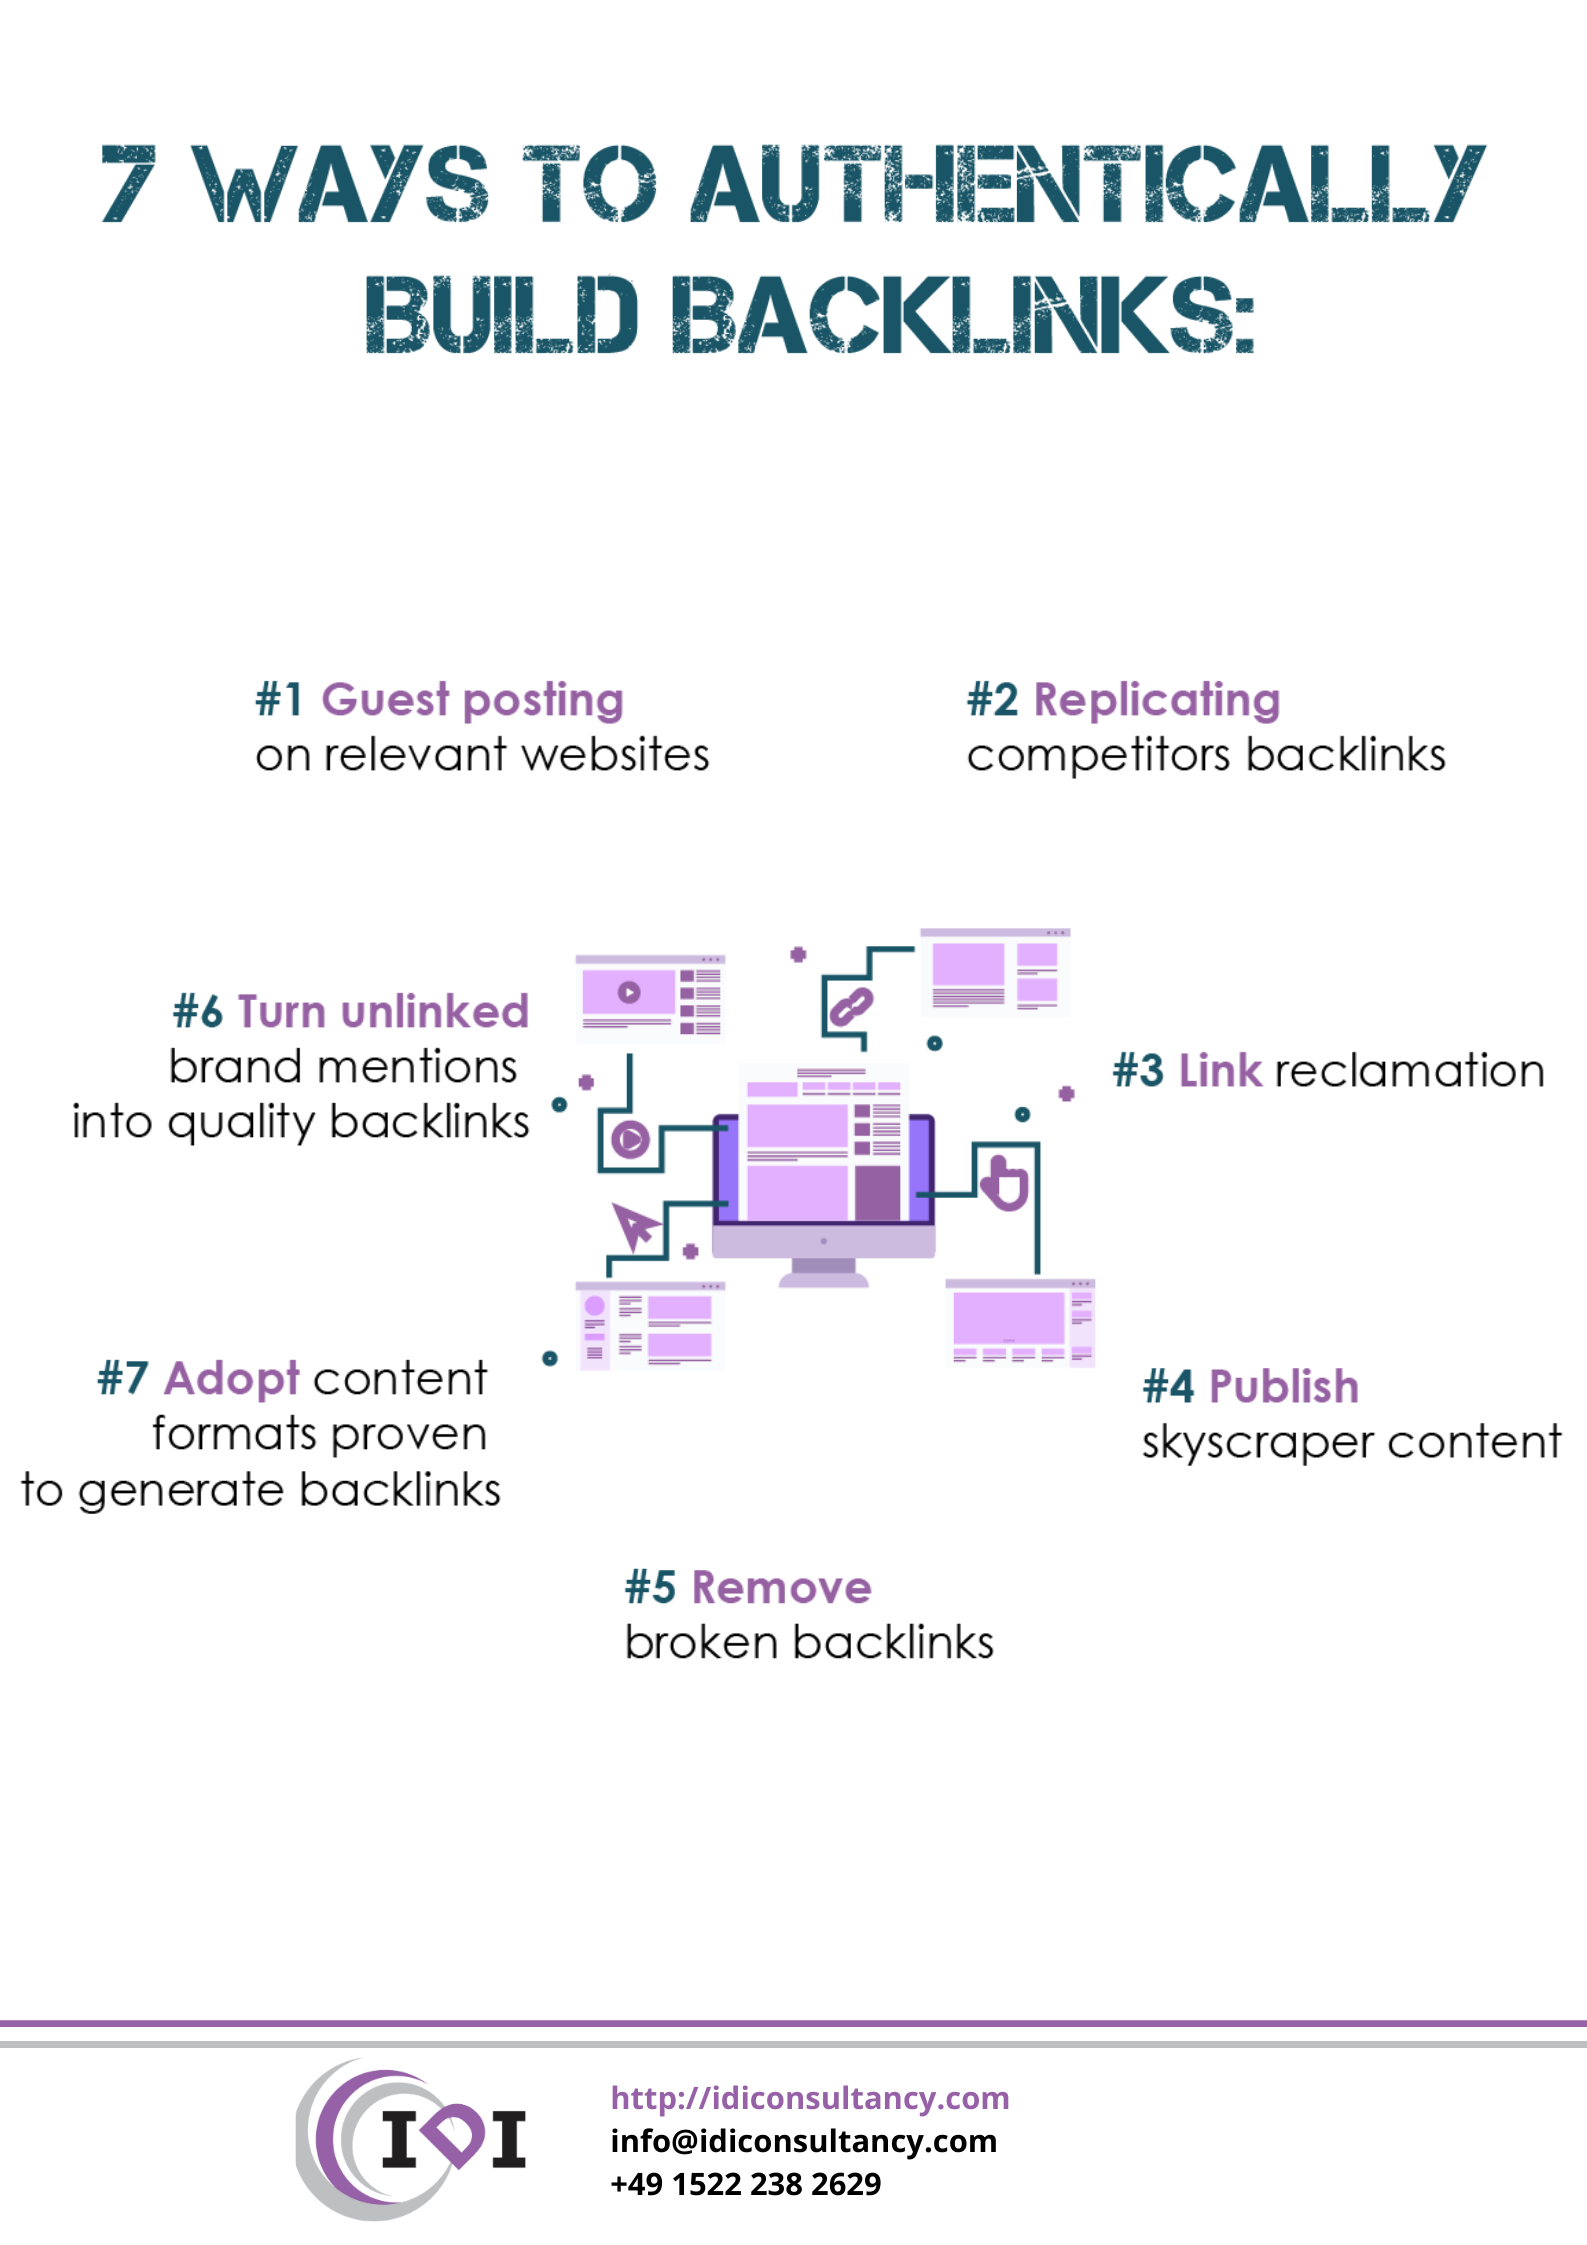 7 Authentic Backlink Building Techniques | by Adriana Stein | Medium